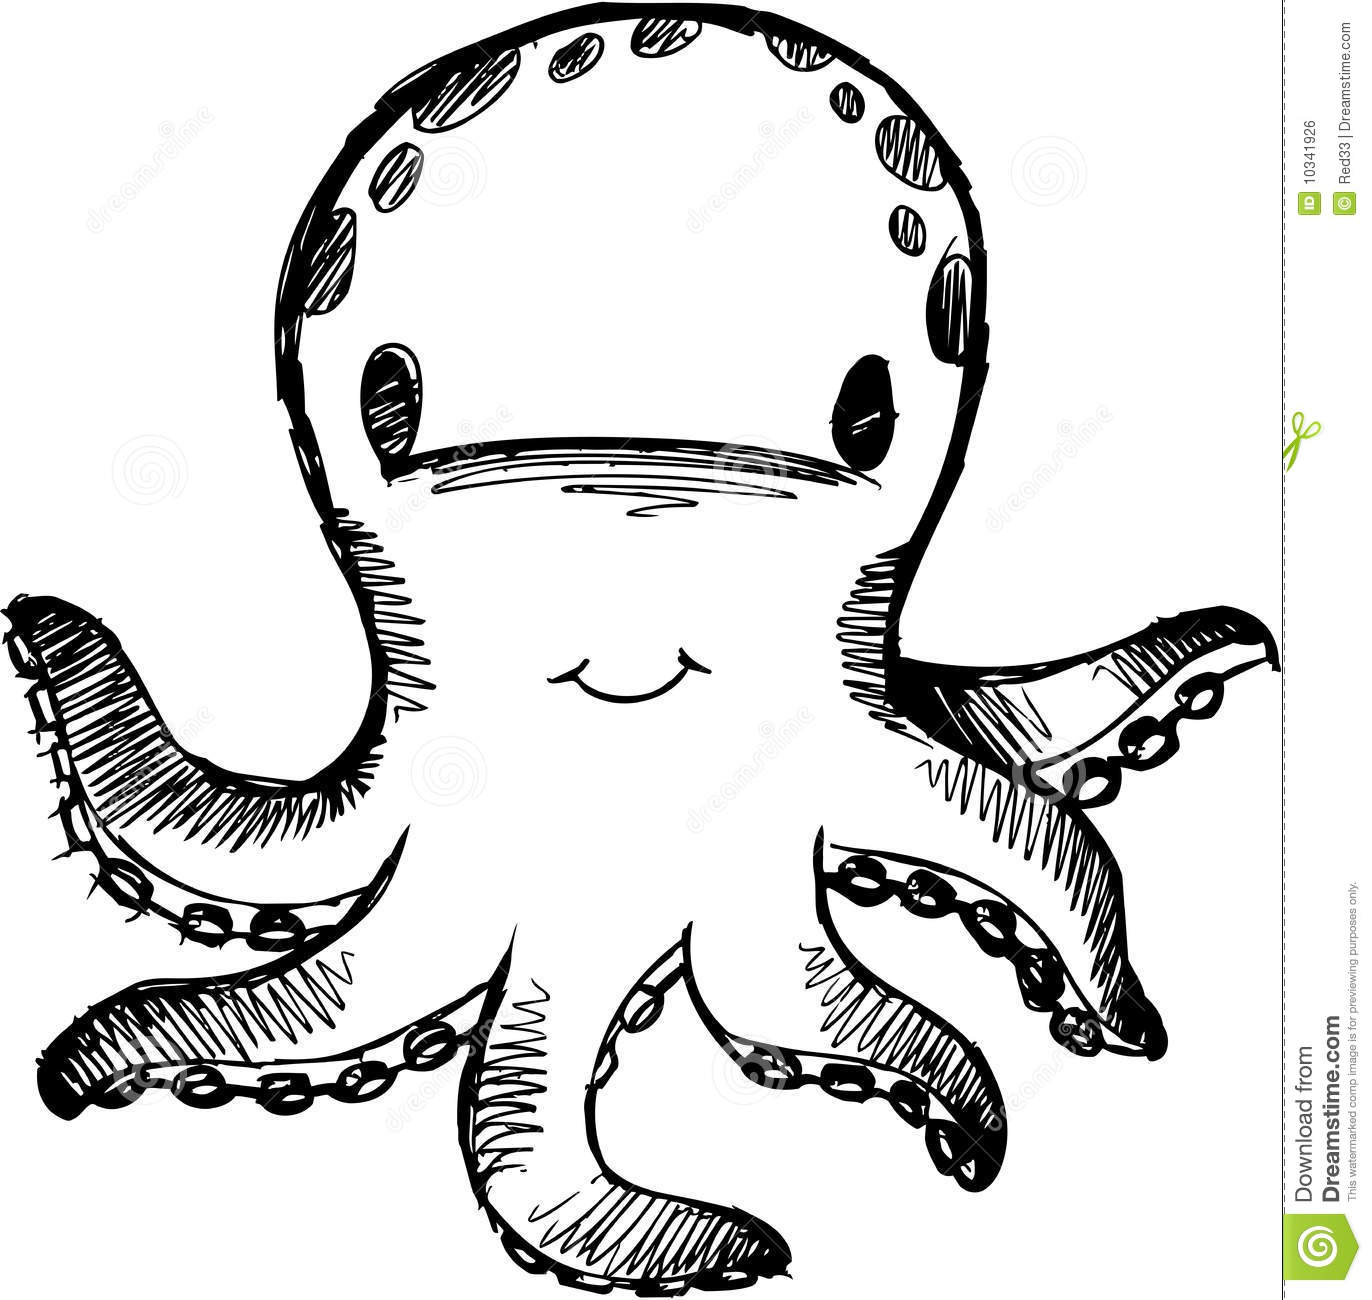 Sketchy Octopus Vector Illustration Royalty Free Stock